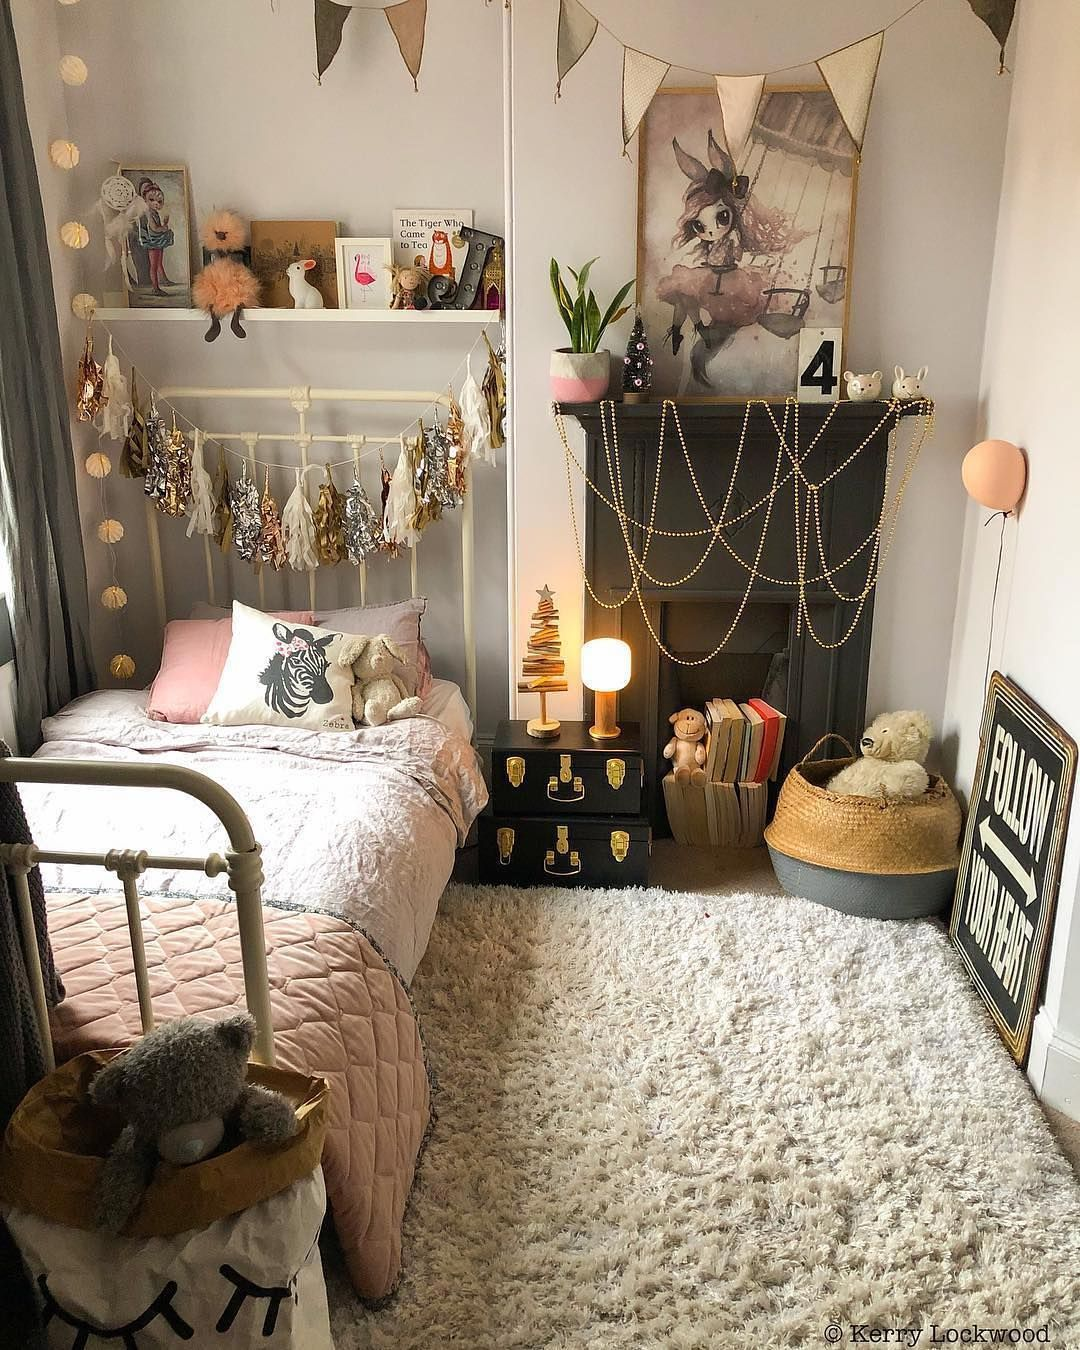 21+ Cute Bedroom Ideas Girls That Will Make a Beautiful ... on Small Bedroom Ideas For Women  id=88284